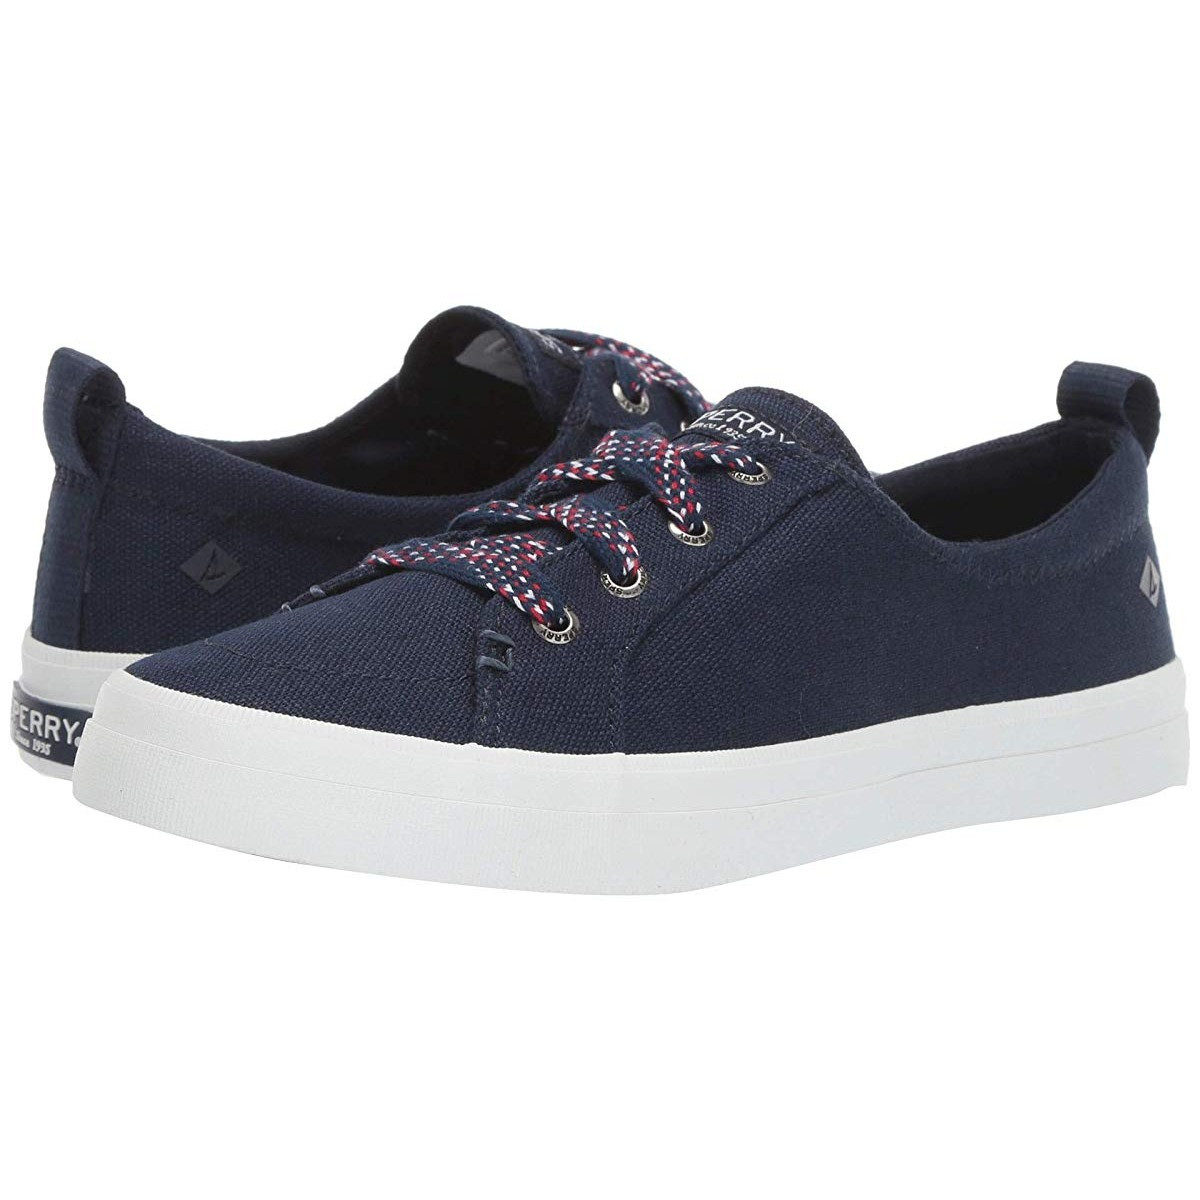 Кроссовки Sperry Crest Vibe Checkered Lace Navy - Оригинал, фото 1